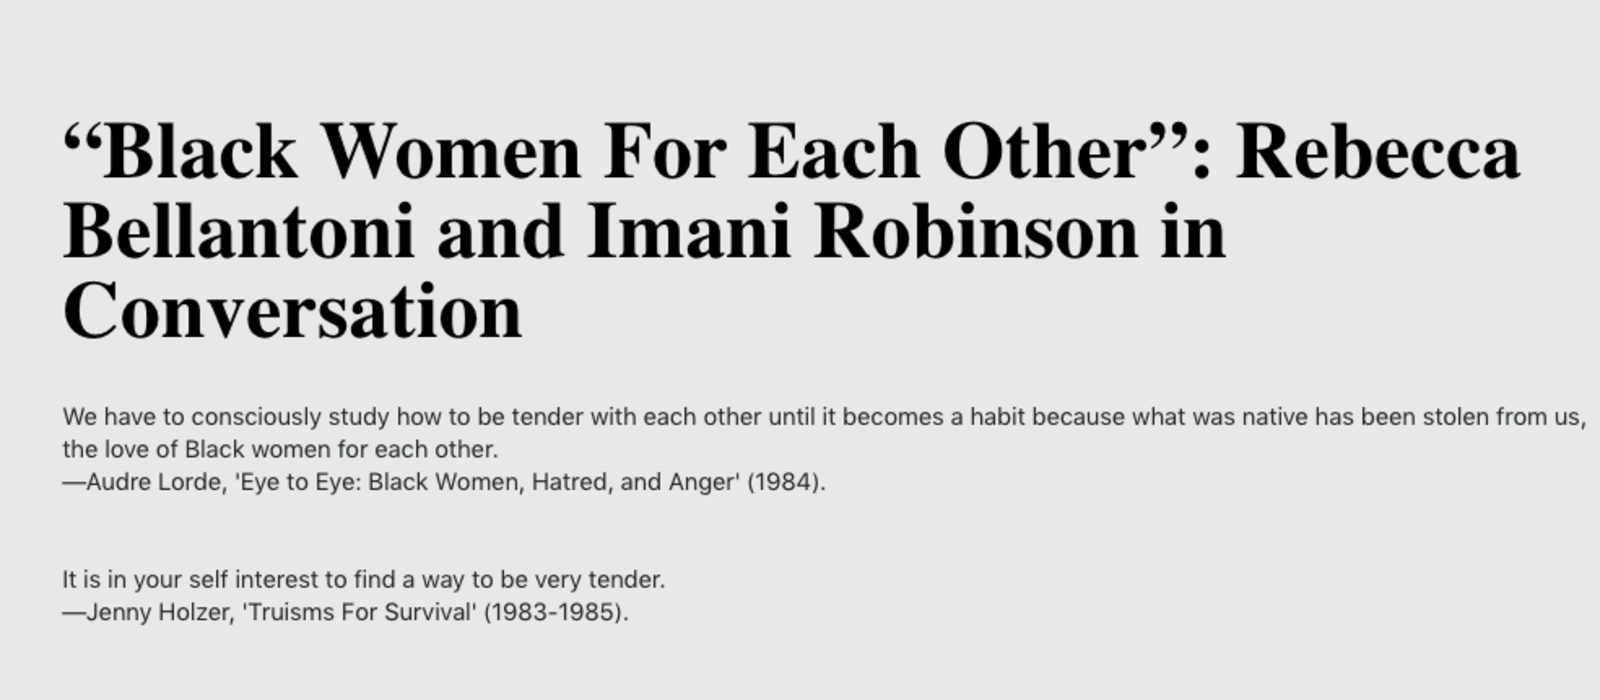 Rebecca Bellantoni and Imani Robinson in Conversation